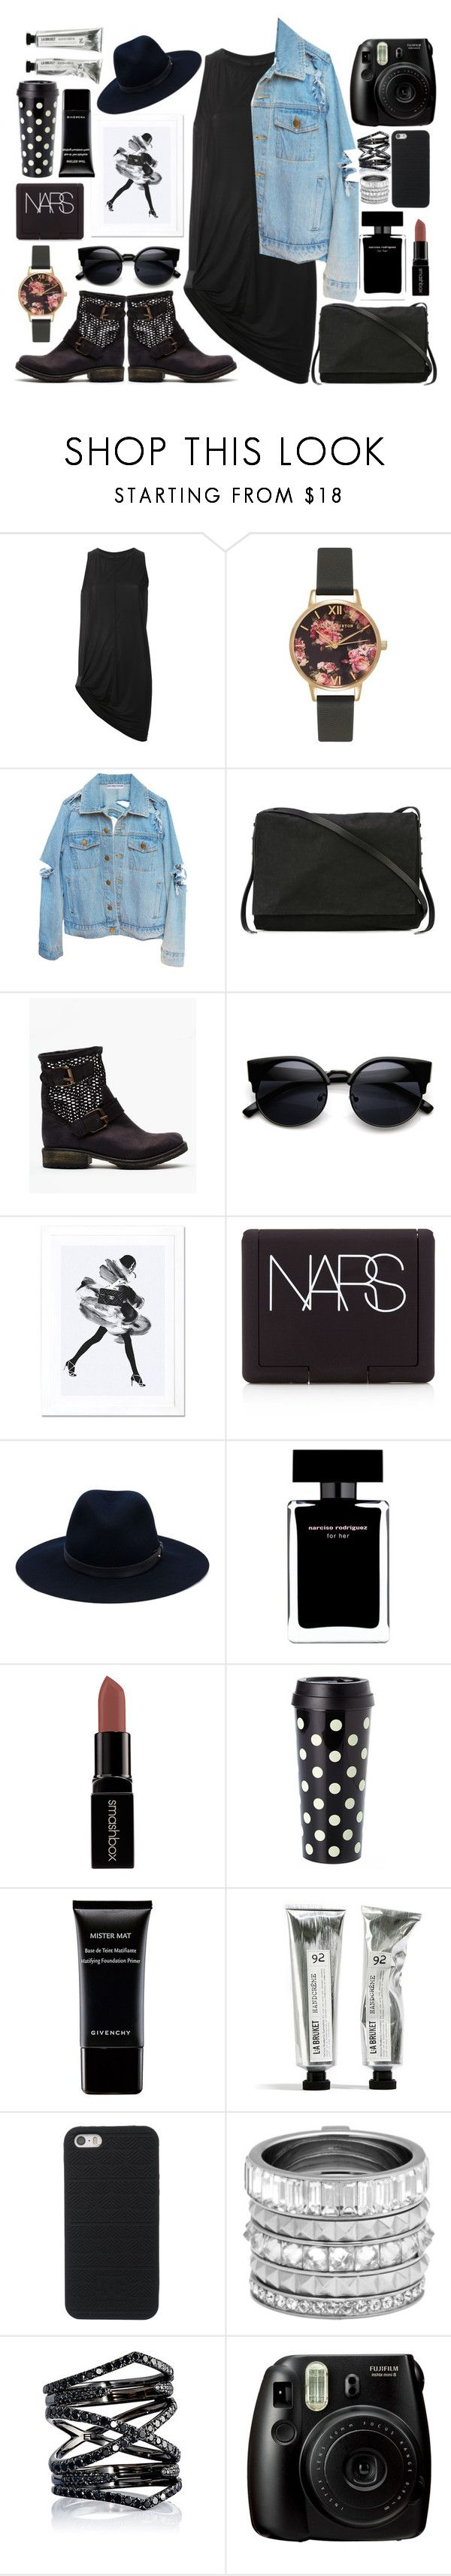 """""""My Secret Life."""" by swanniboo on Polyvore featuring Rick Owens, Olivia Burton, Steve Madden, iCanvas, NARS Cosmetics, rag & bone, Narciso Rodriguez, Smashbox, Kate Spade and Givenchy"""